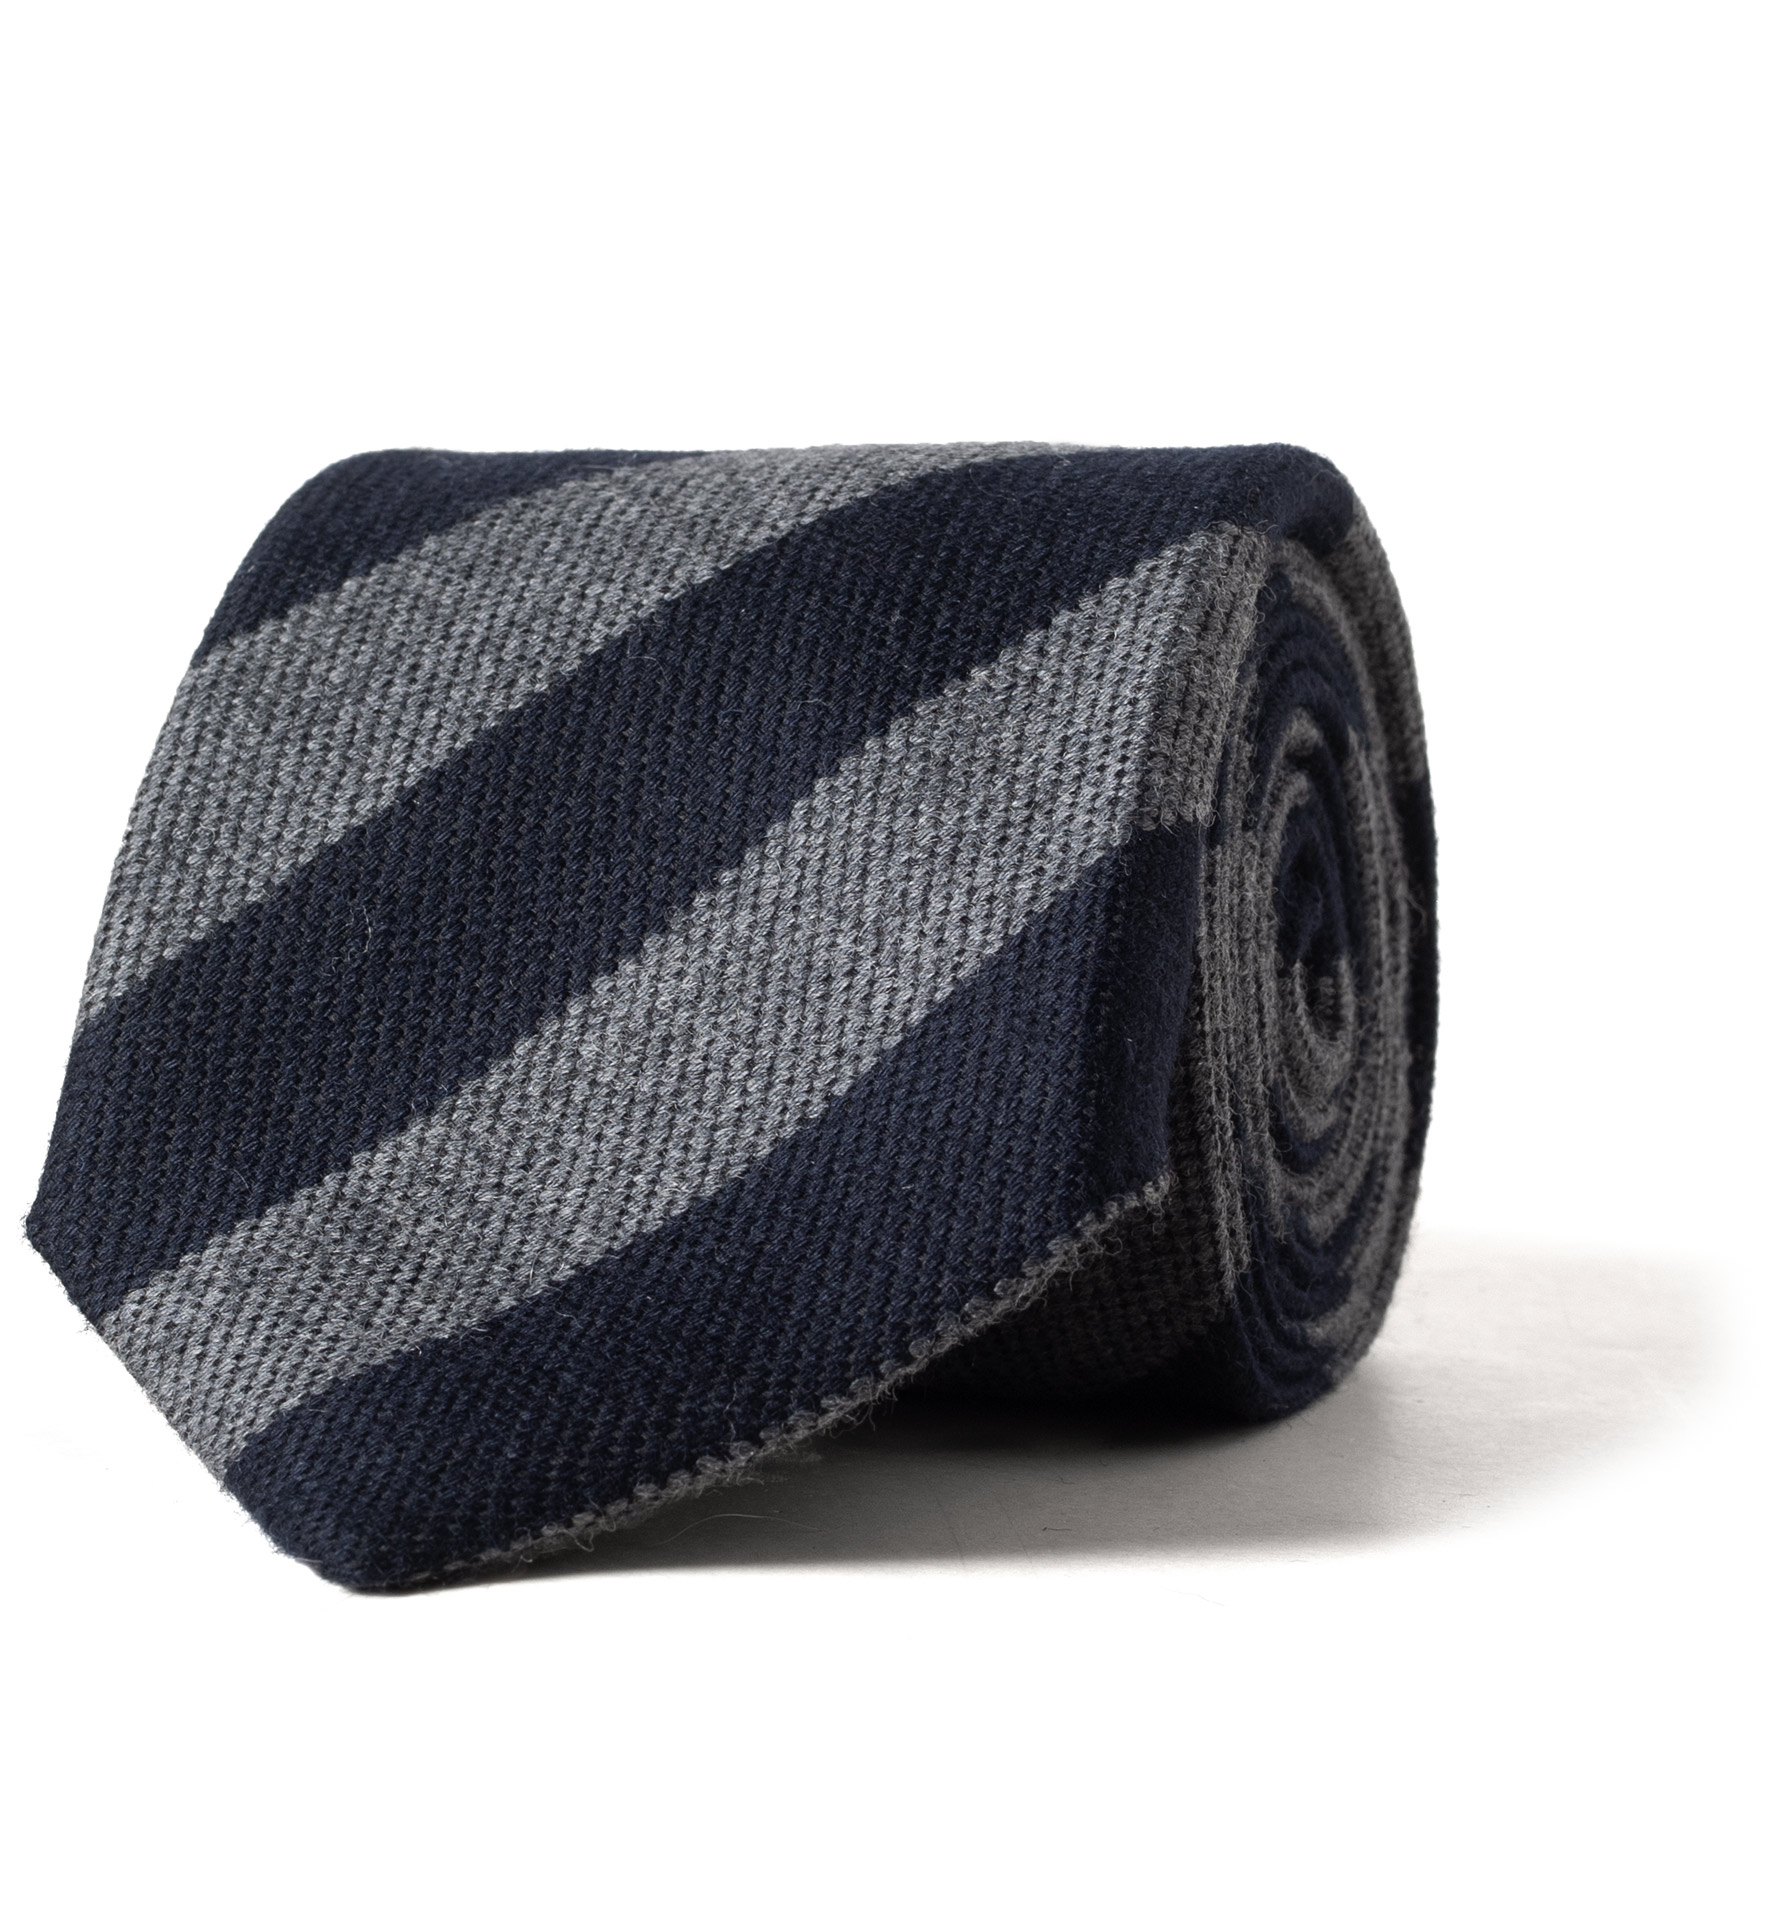 Zoom Image of Navy and Grey Striped Wool and Silk Tie